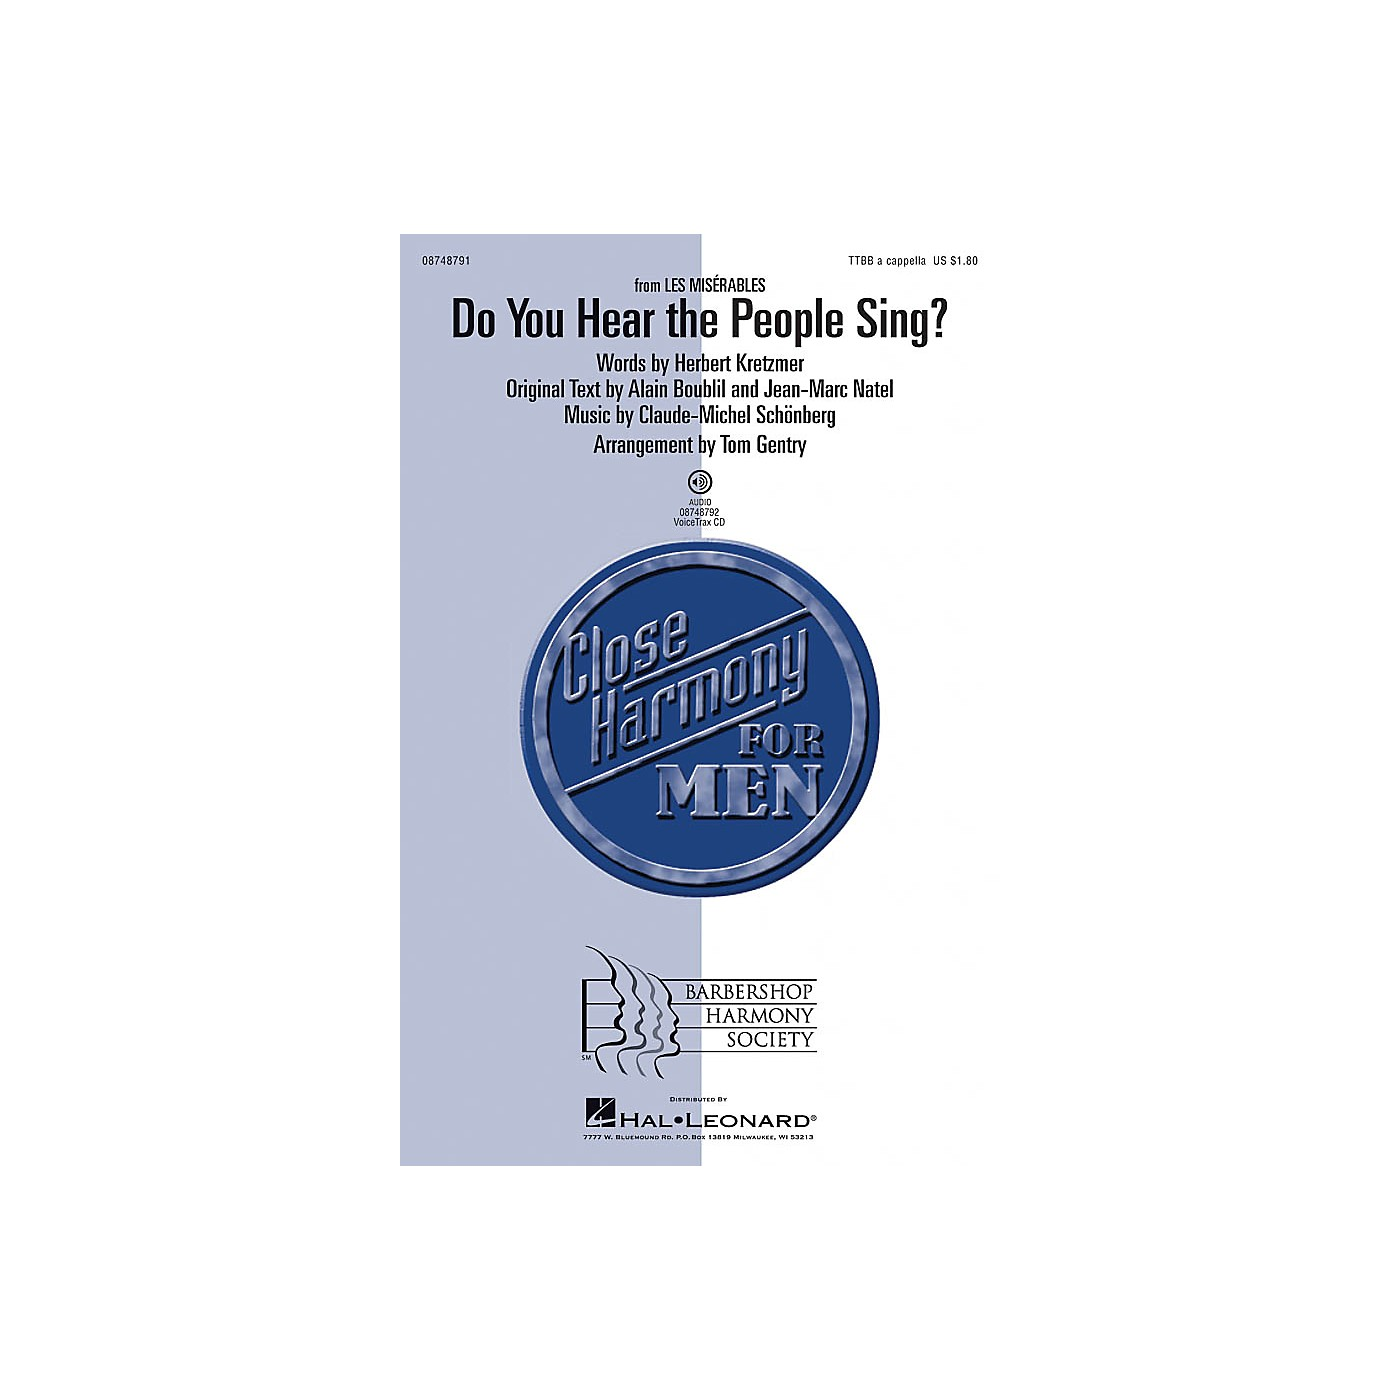 Hal Leonard Do You Hear the People Sing? (from Les Misérables) TTBB A Cappella arranged by Tom Gentry thumbnail